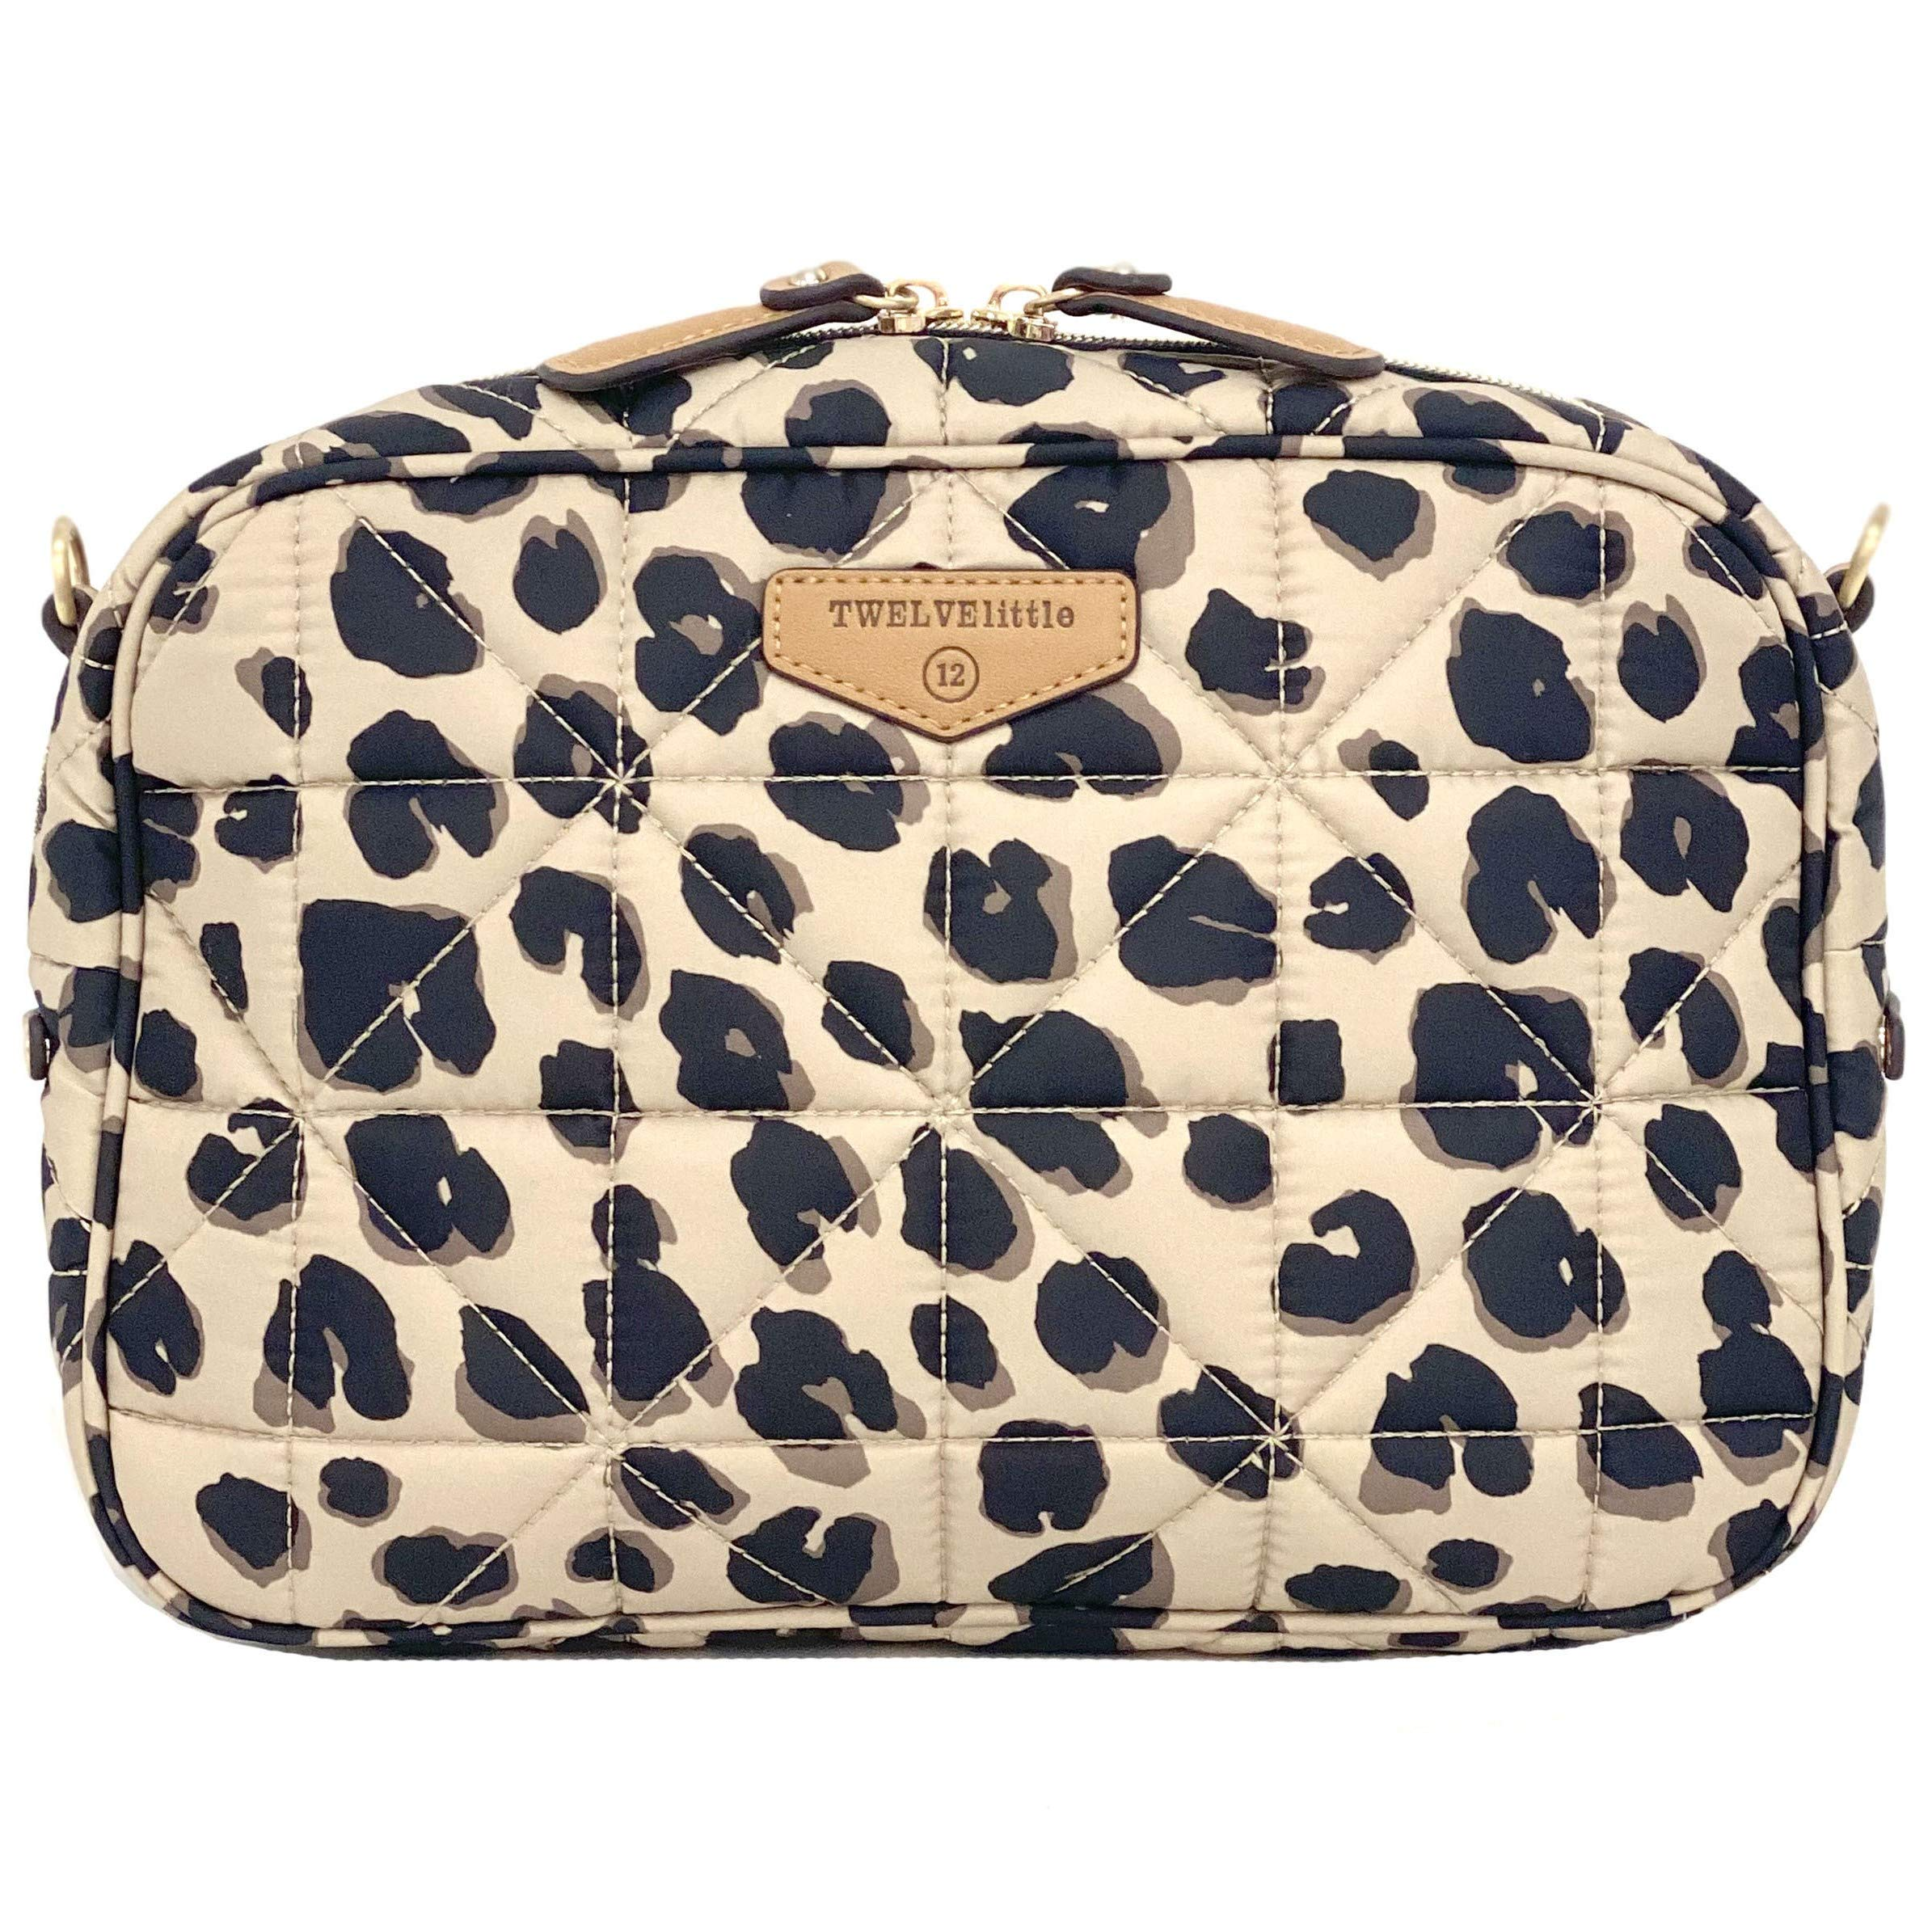 TWELVElittle Diaper Clutch 3.0, Leopard Print (New) - Fashion Diaper Bag for Moms and Dads, Worn As Clutch or Crossover Bag with Compartments for Diapers, Wipes and Changing Pad